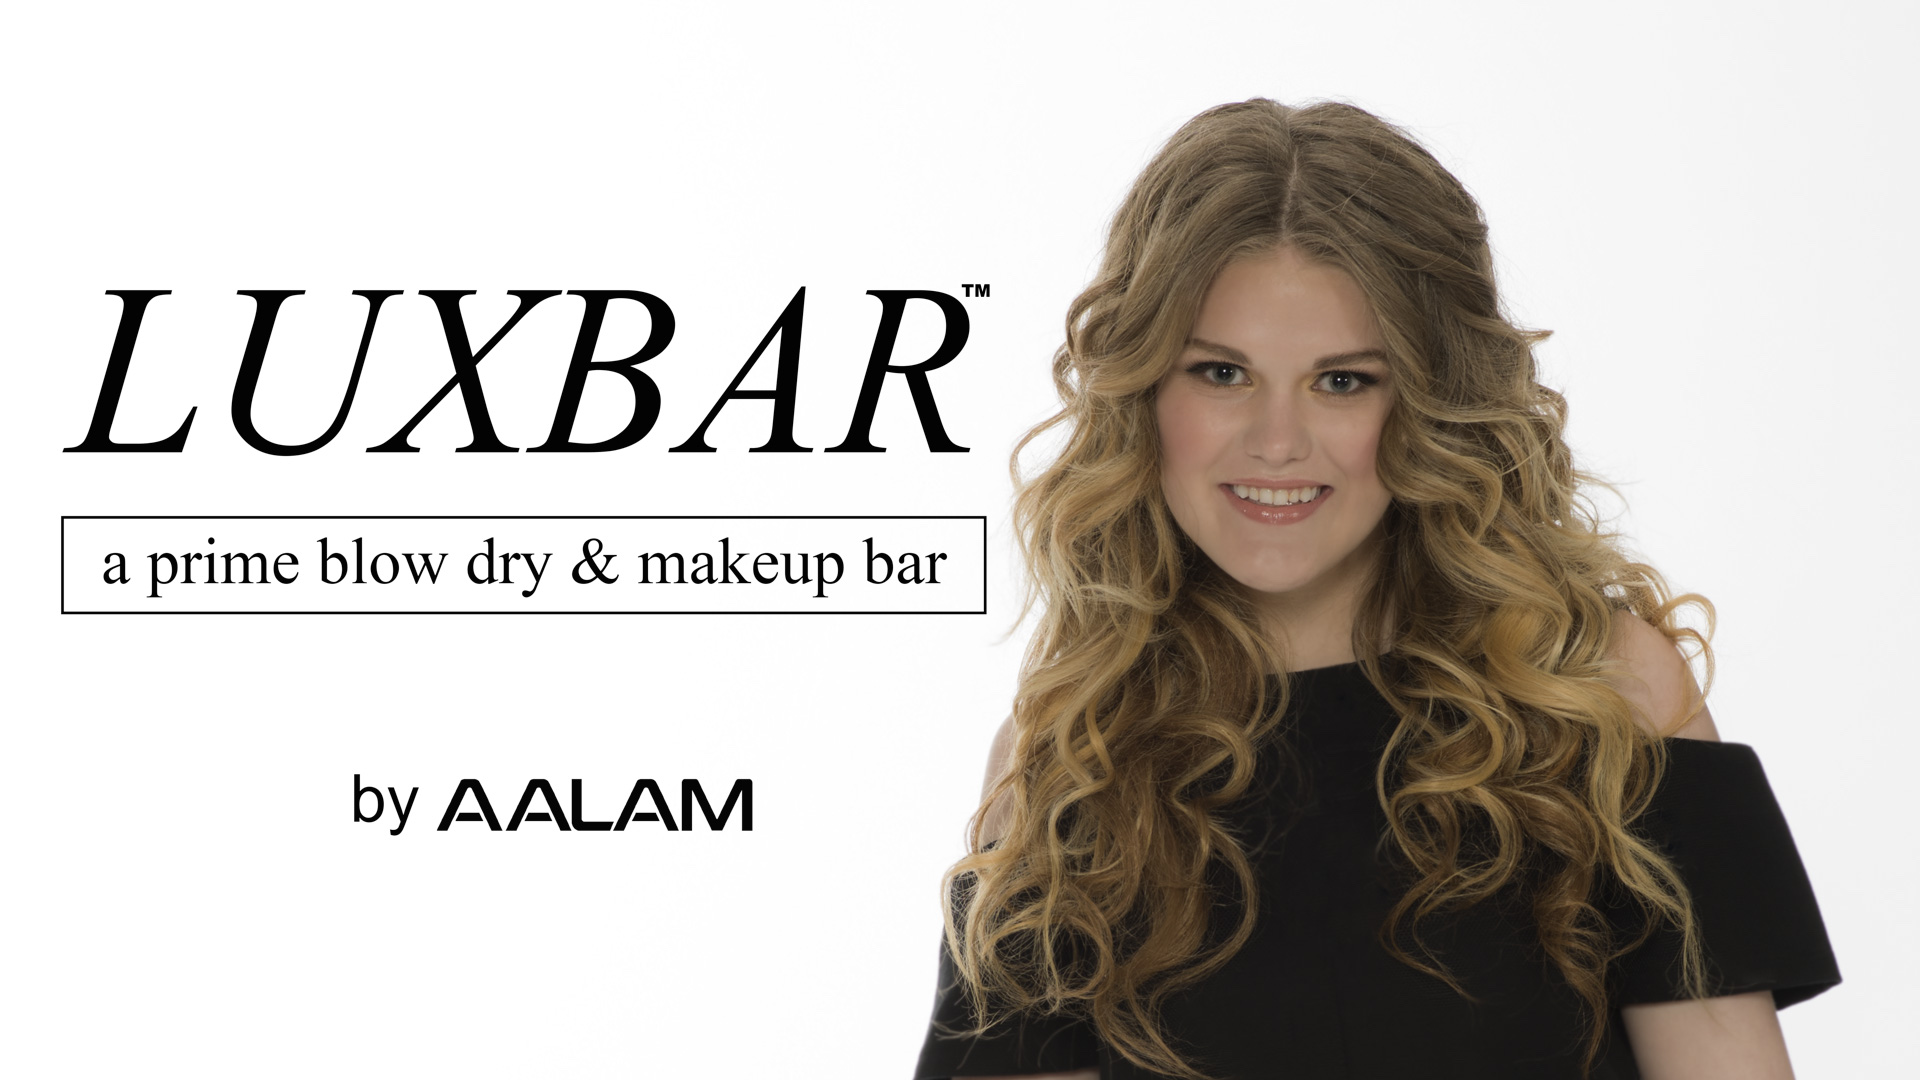 Luxbar frisco blow dry bar plano makeup bar north dallas for Aalam salon prices